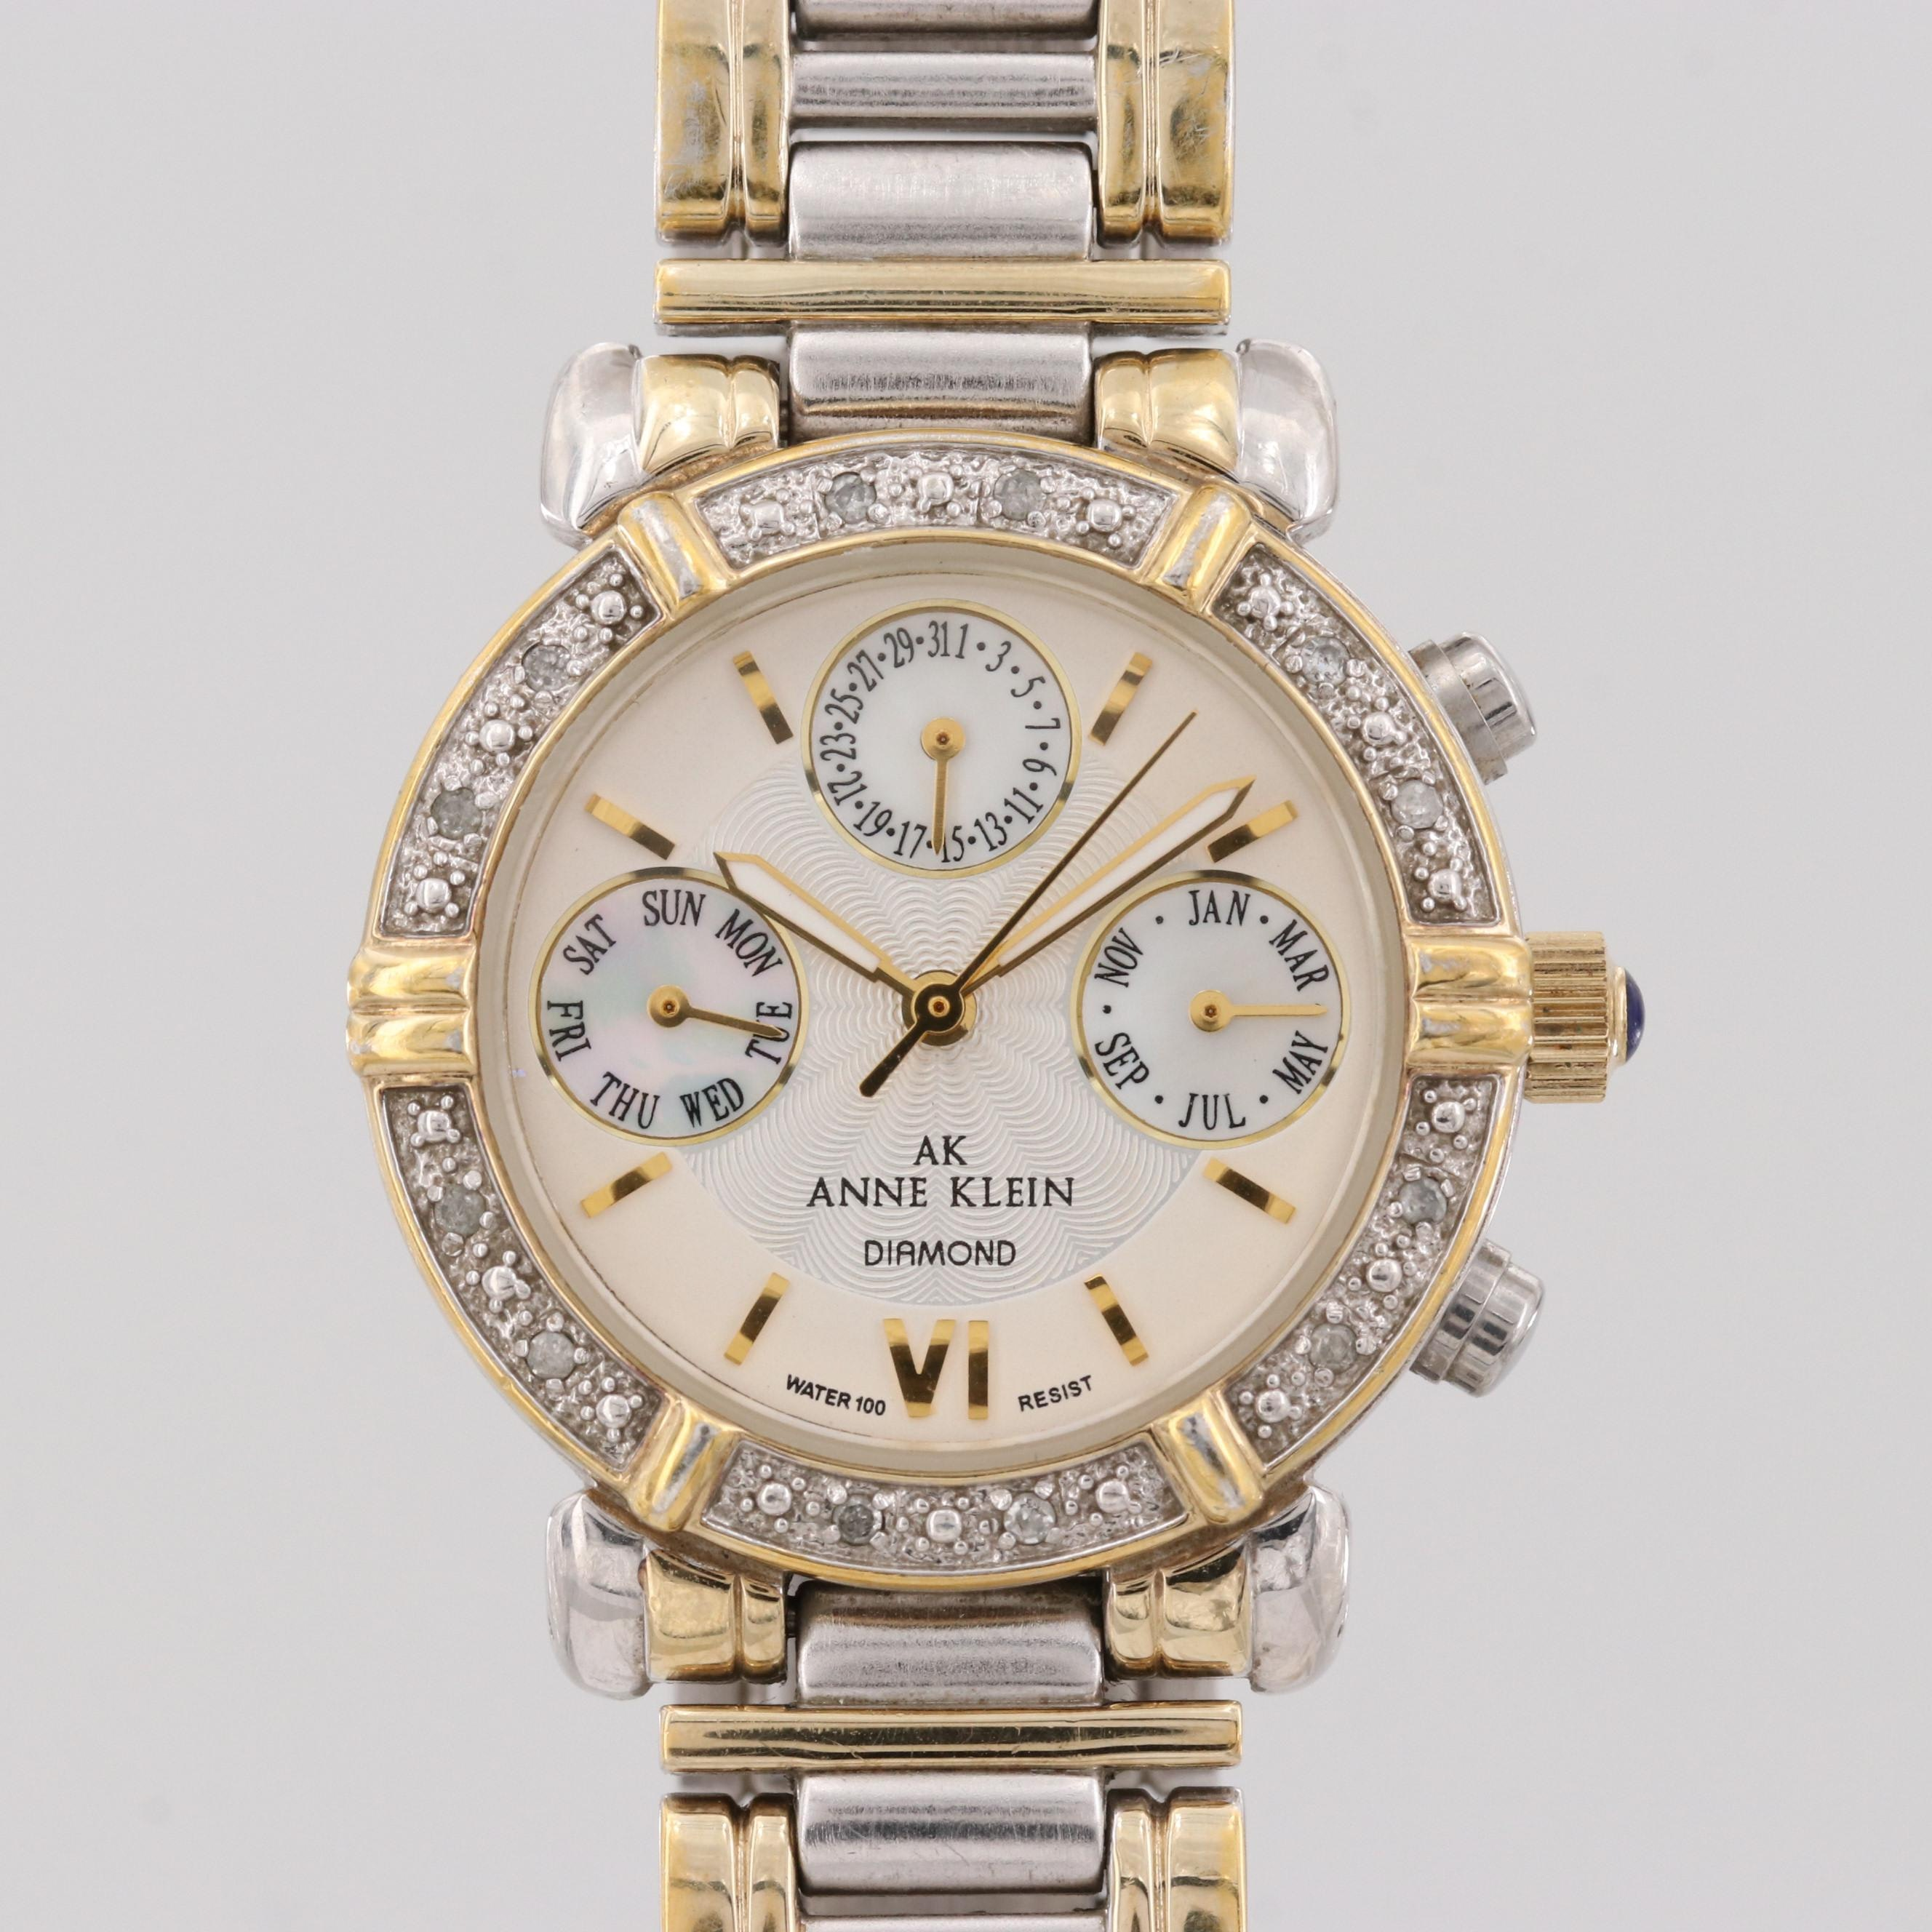 Anne Klein Two-Tone Wristwatch With Diamond Bezel and Mother of Pearl Subdials